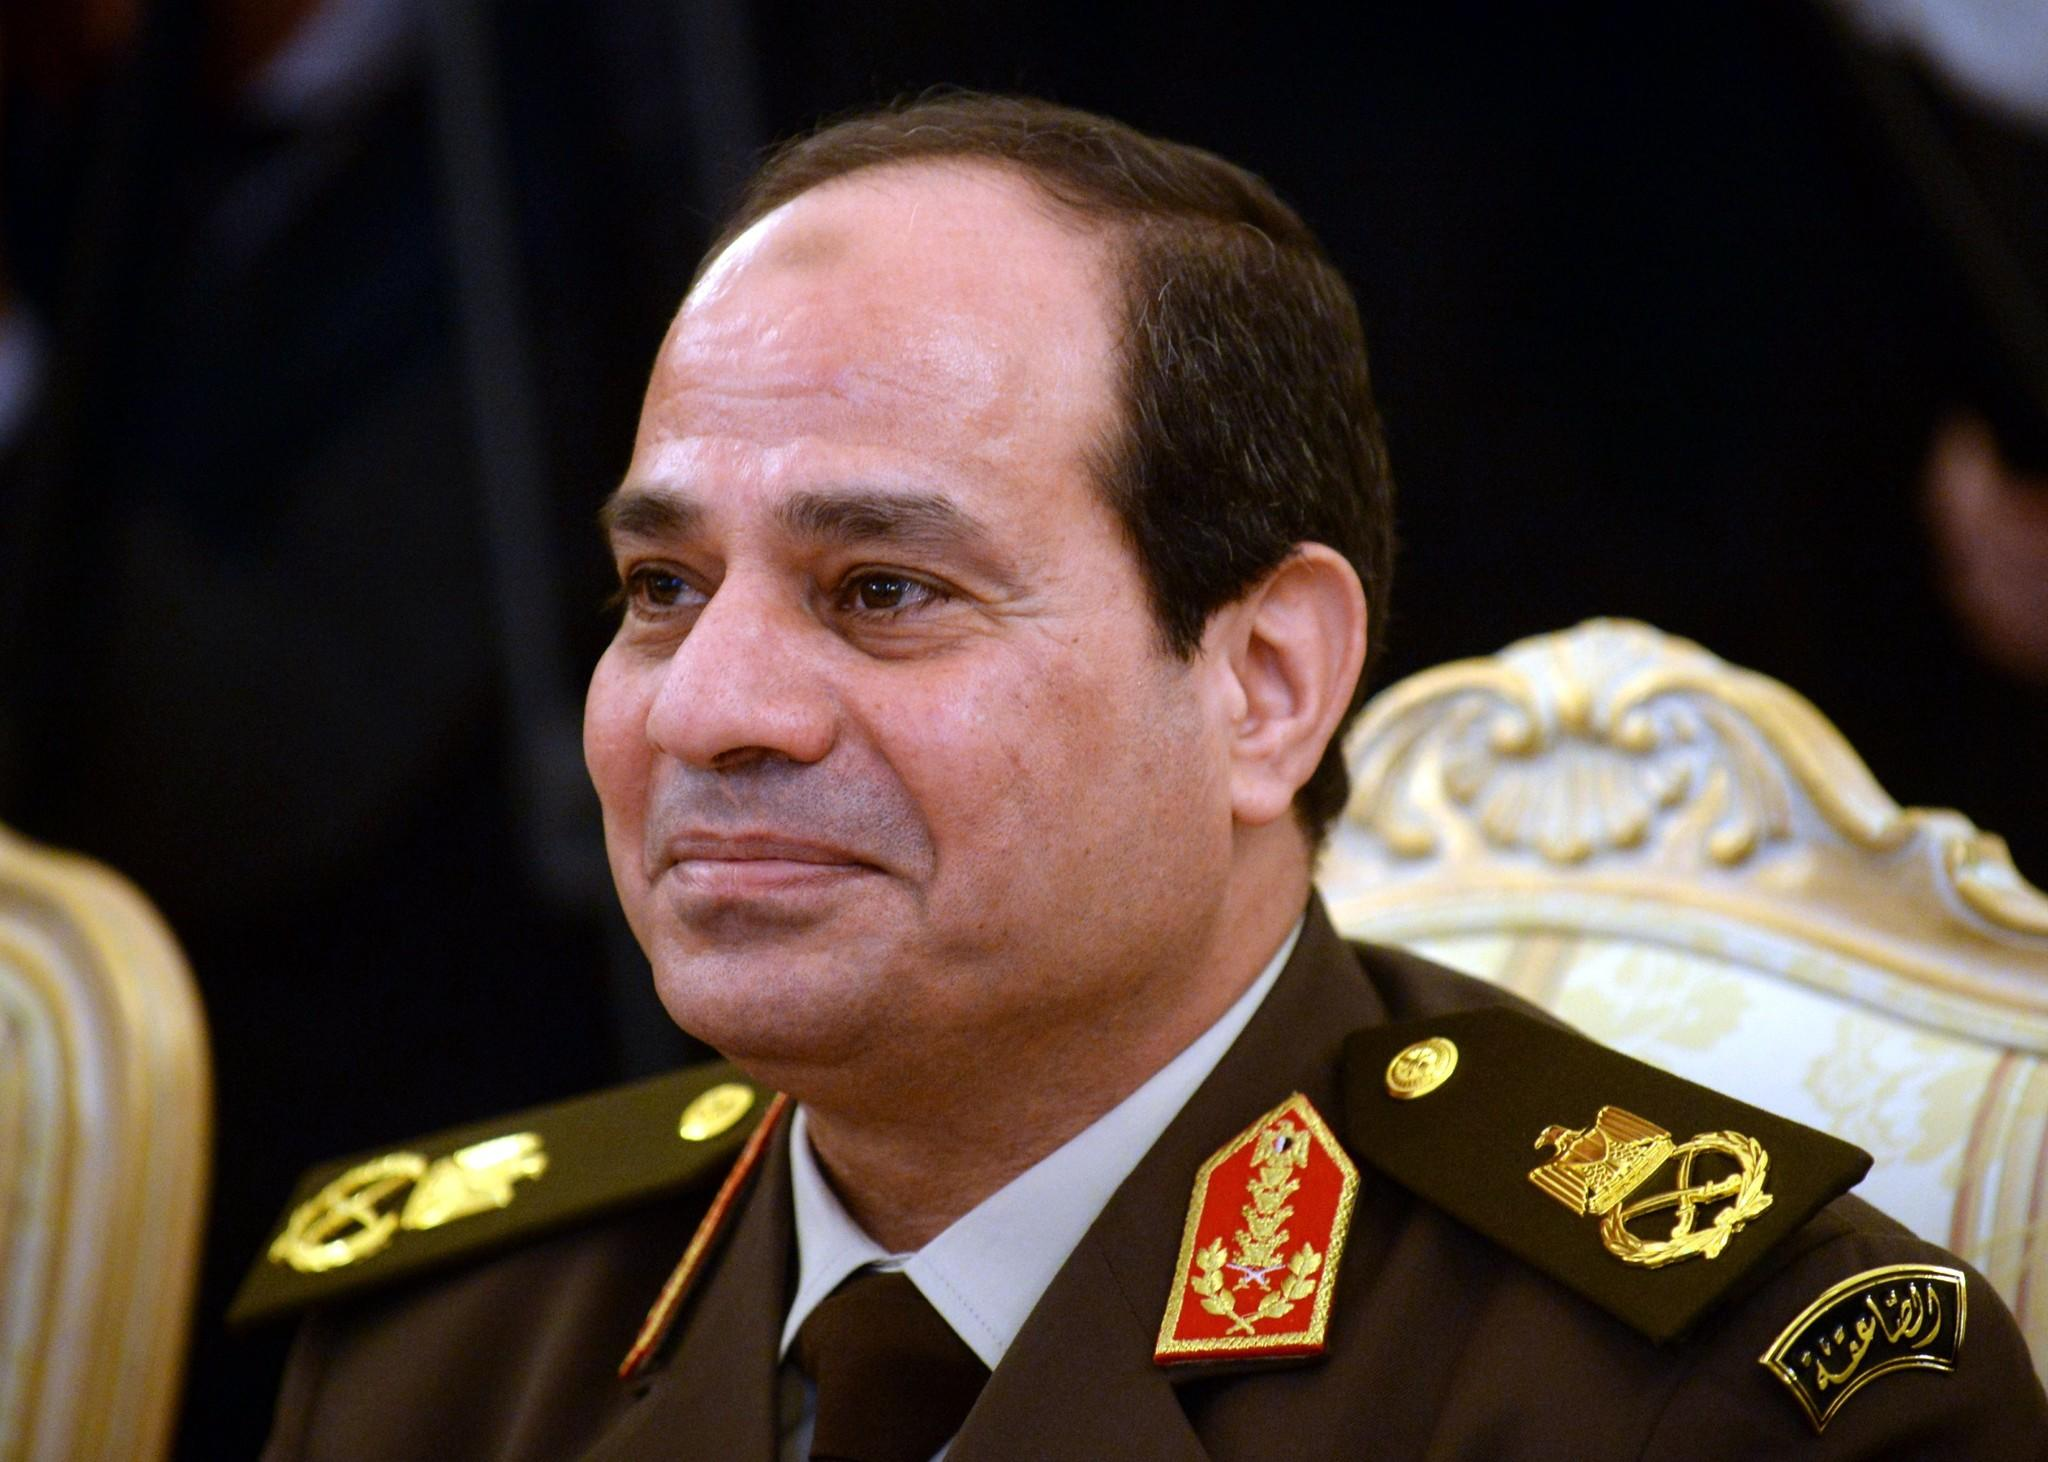 A picture taken on Feb. 13 shows then-Egyptian army chief Gen. Abdel Fattah Sisi during a meeting in Moscow.